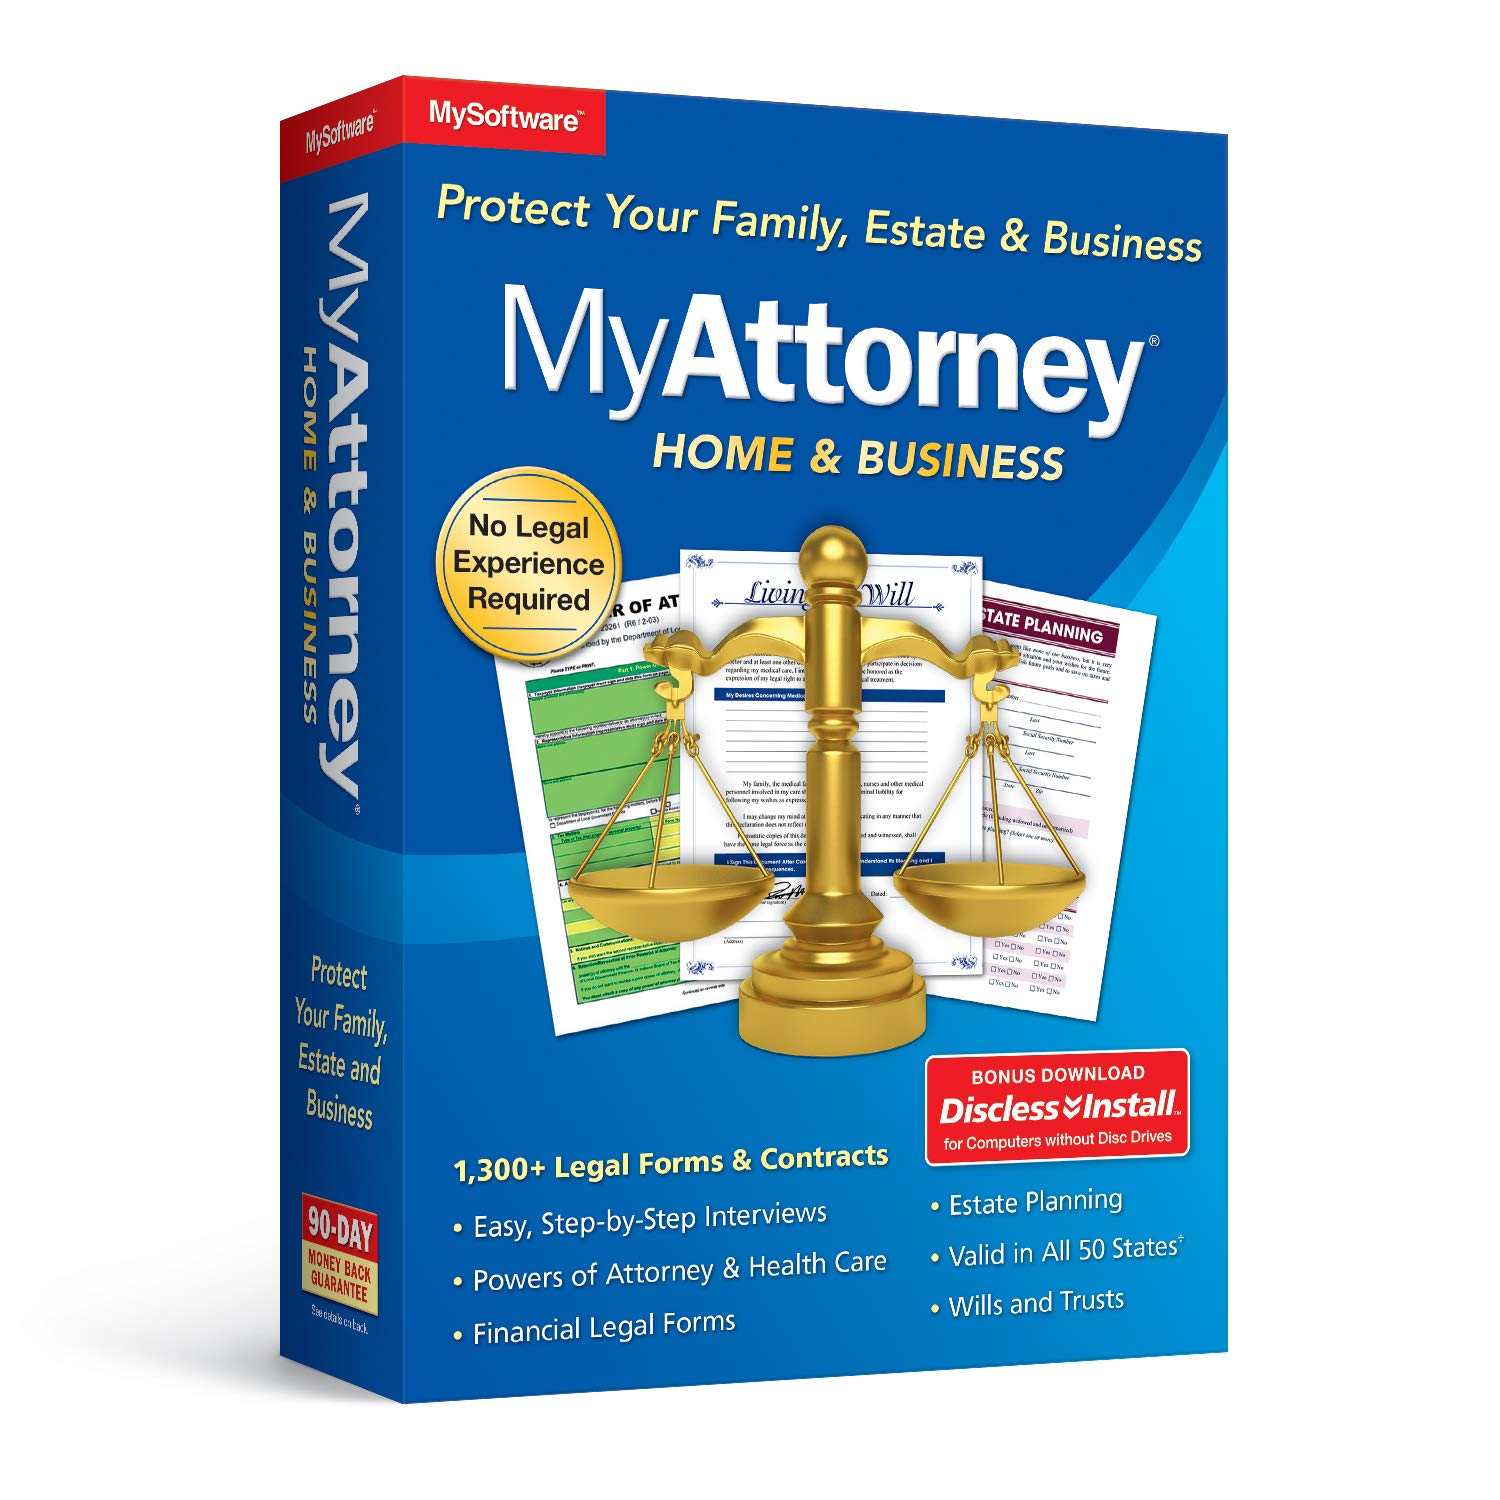 MyAttorney Home & Business by Avanquest